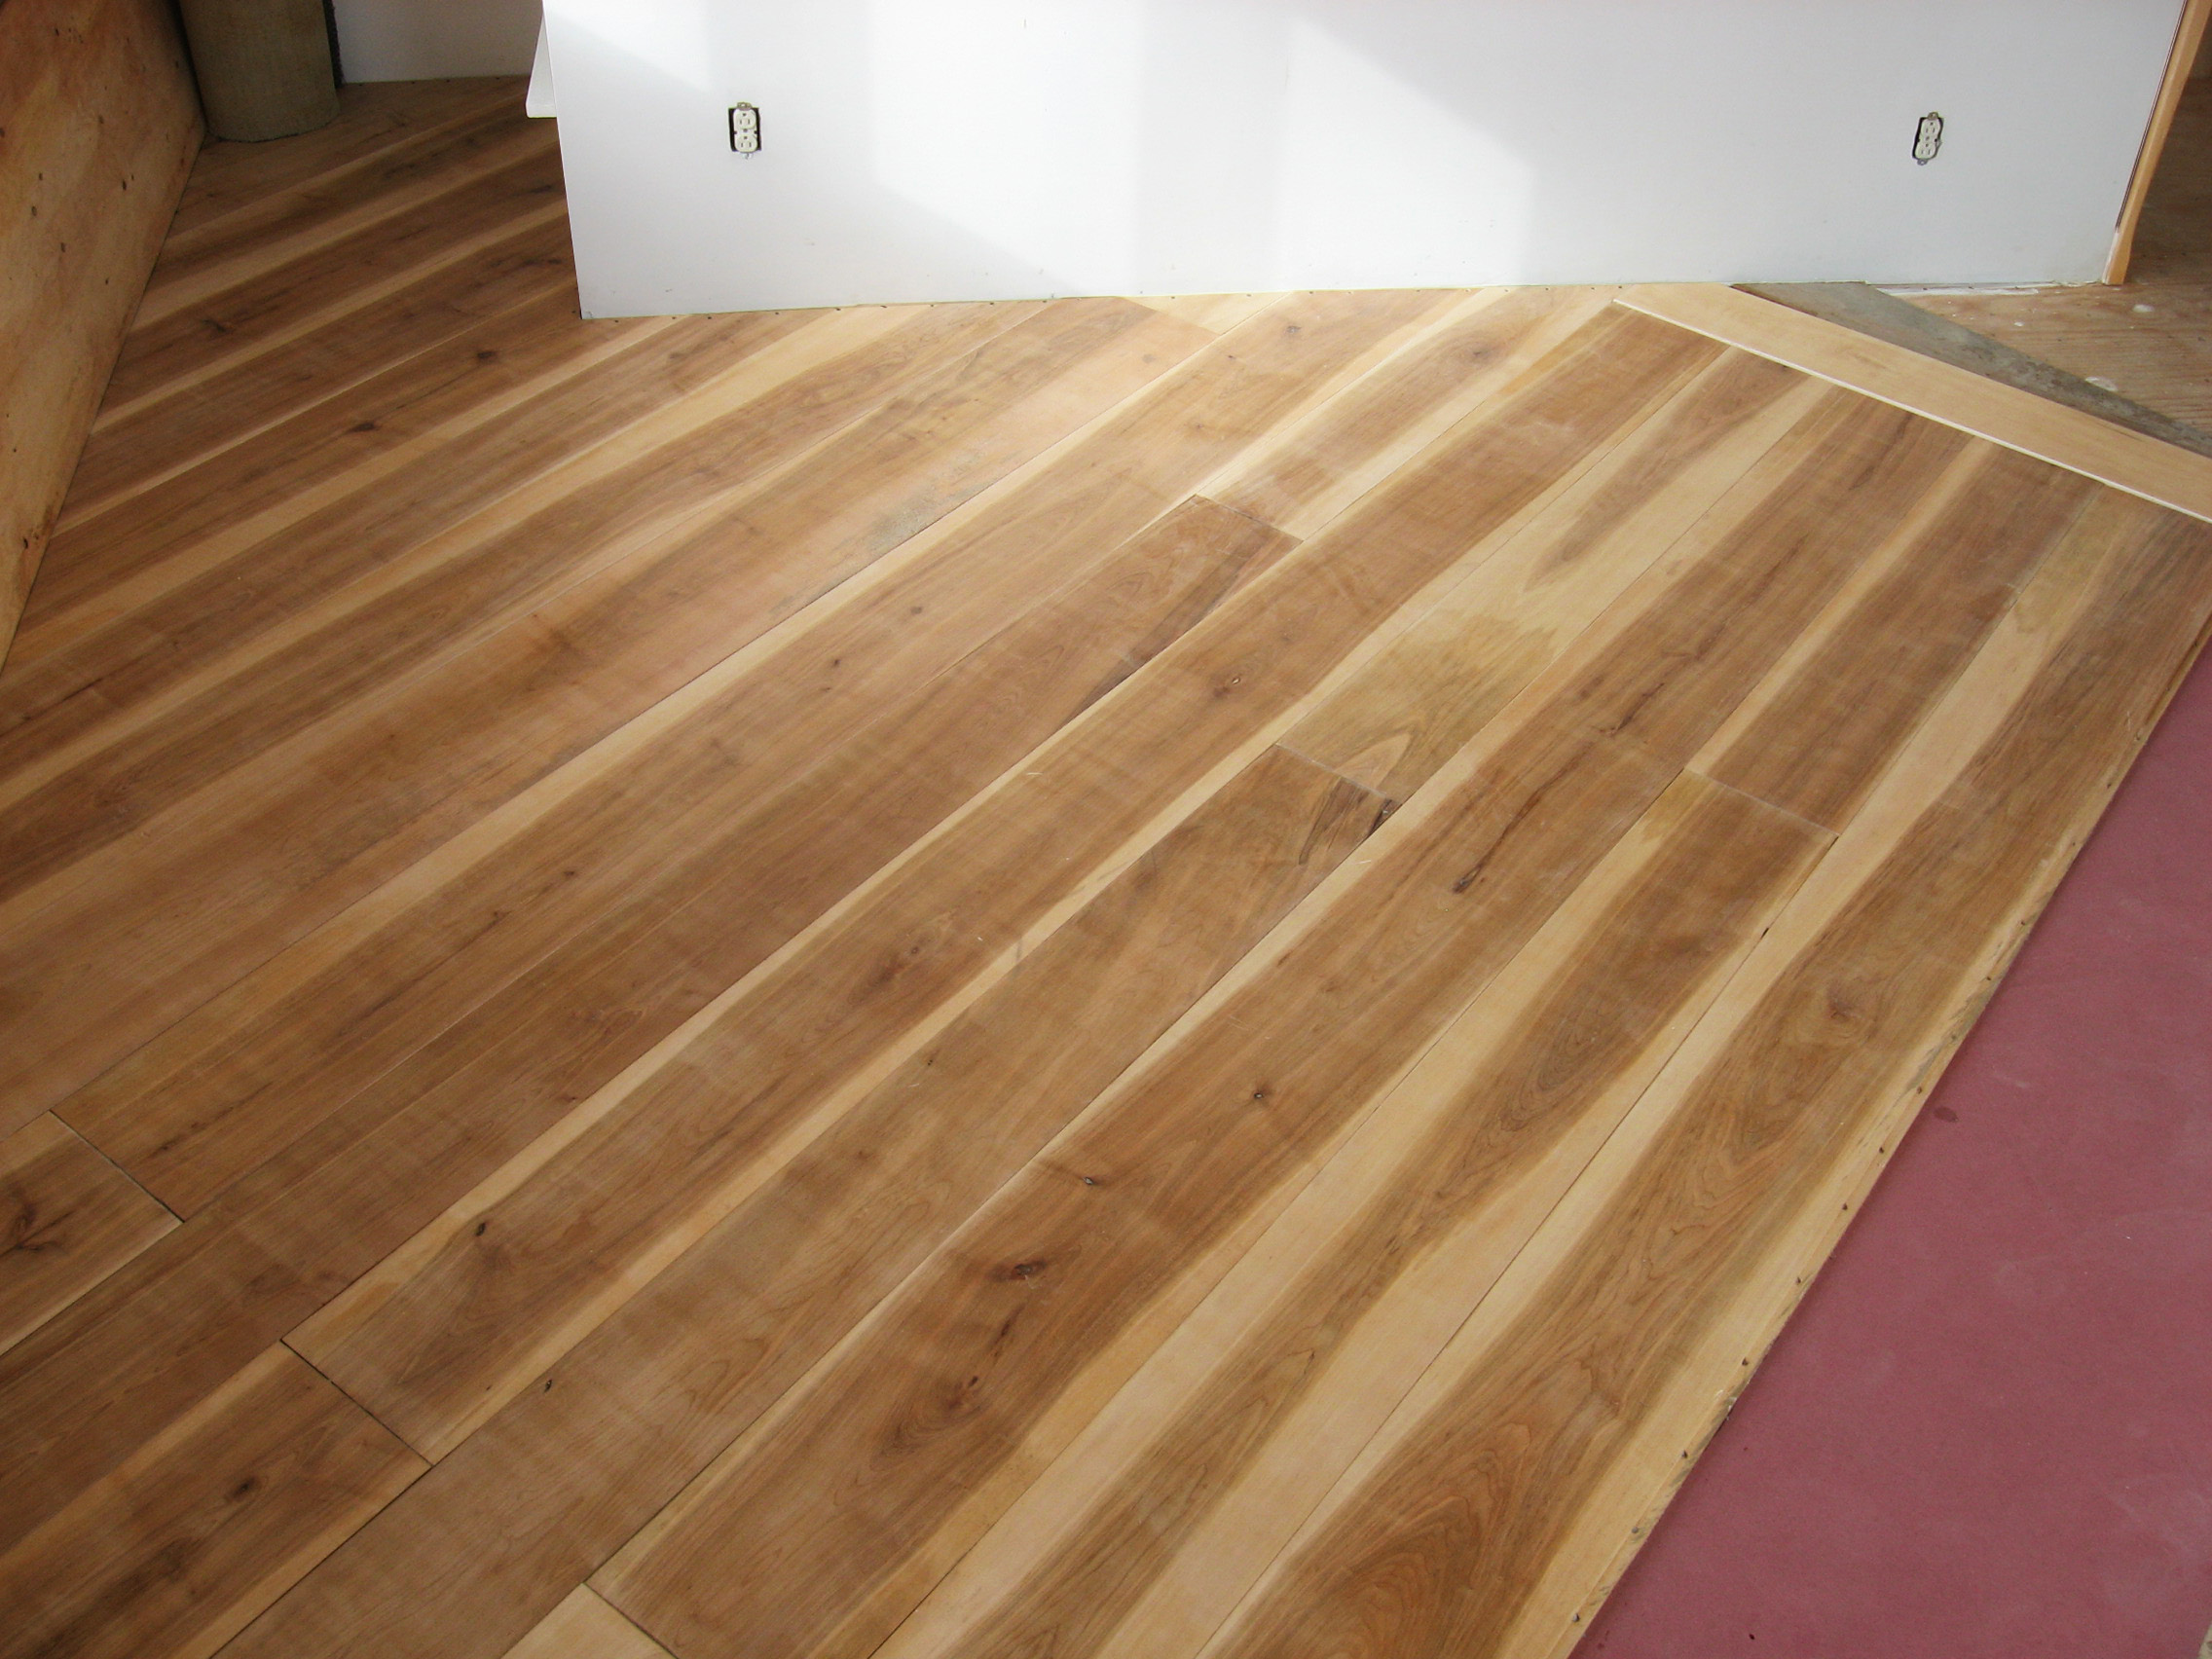 pecan floor hardwood golden ipe floors flooring oak